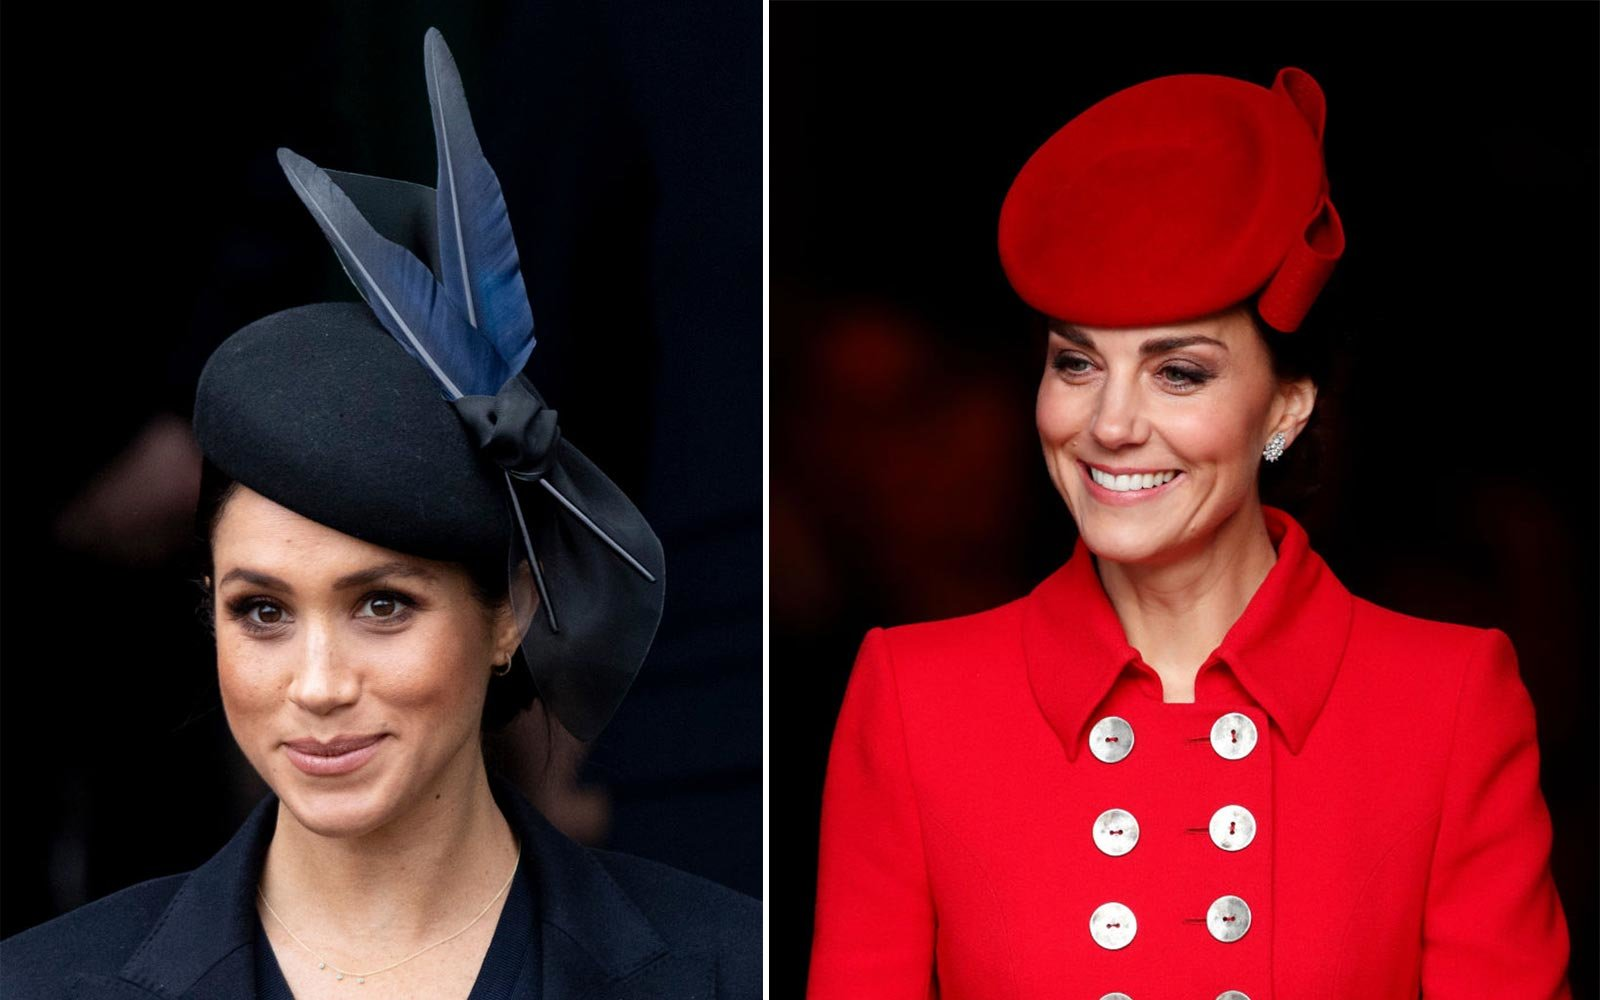 e5222e57a90 Kentucky Derby Hats Inspired by Kate Middleton and Meghan Markle ...